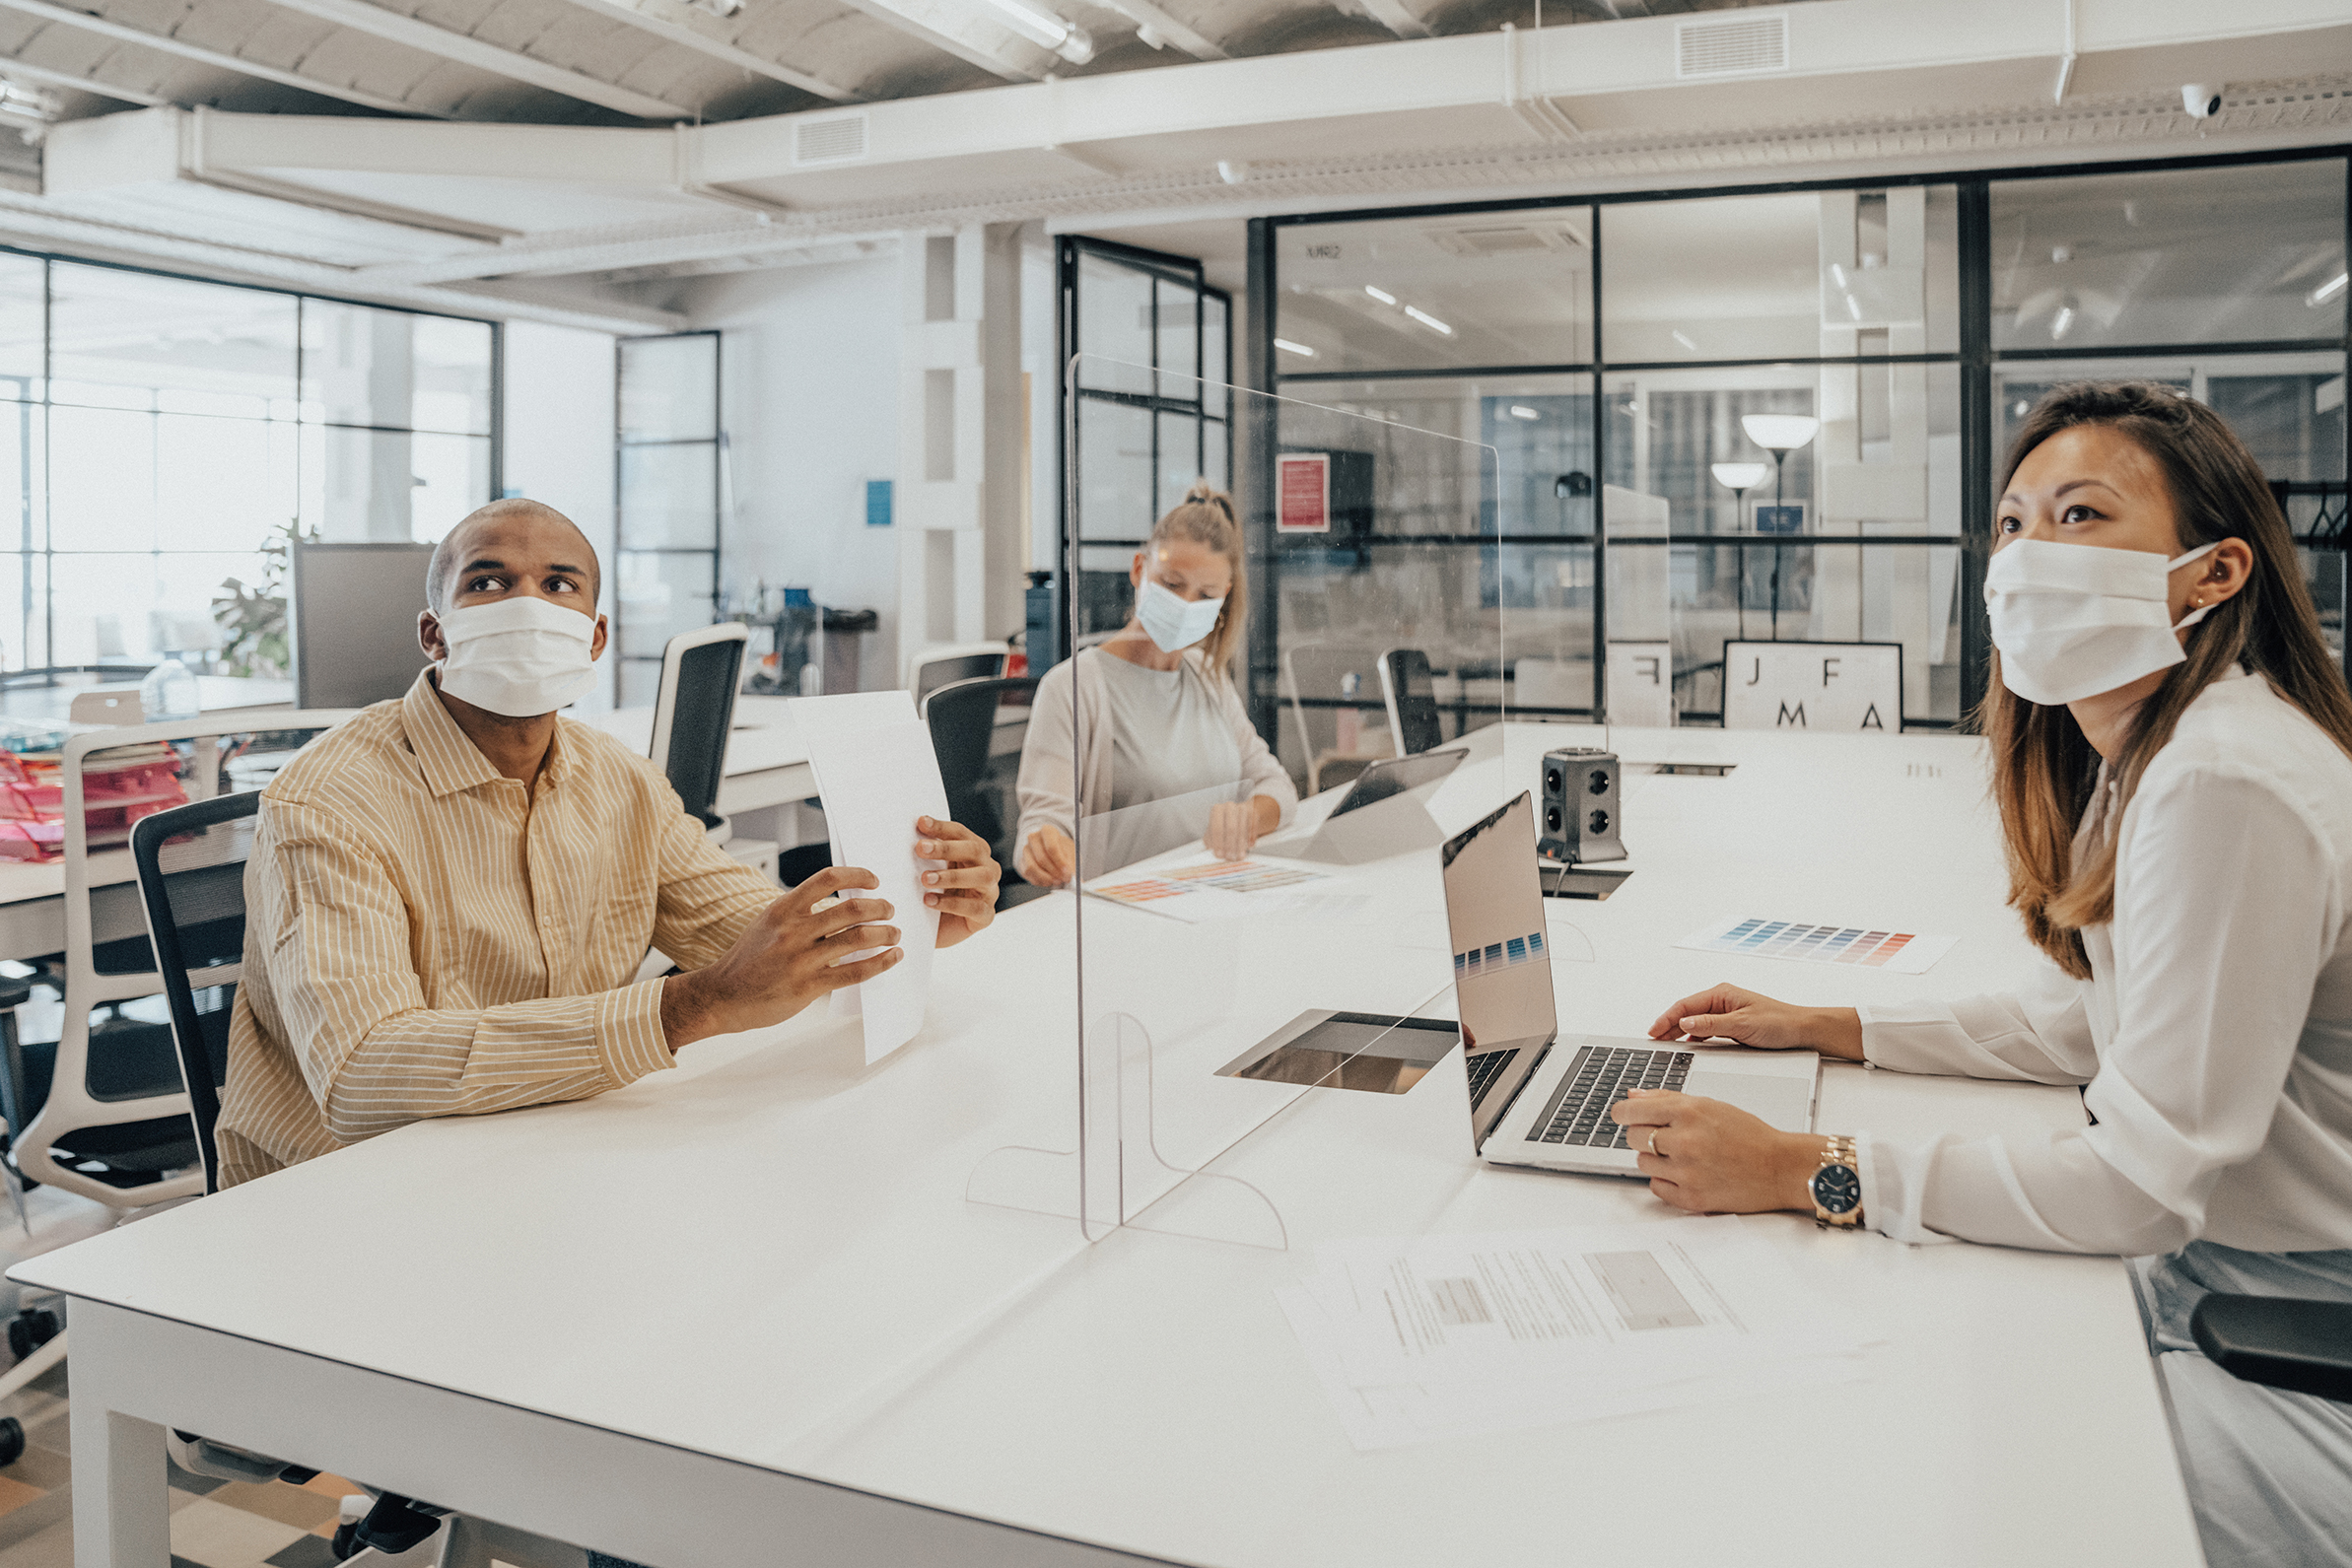 Businesspeople working at office with glass partition dividing them